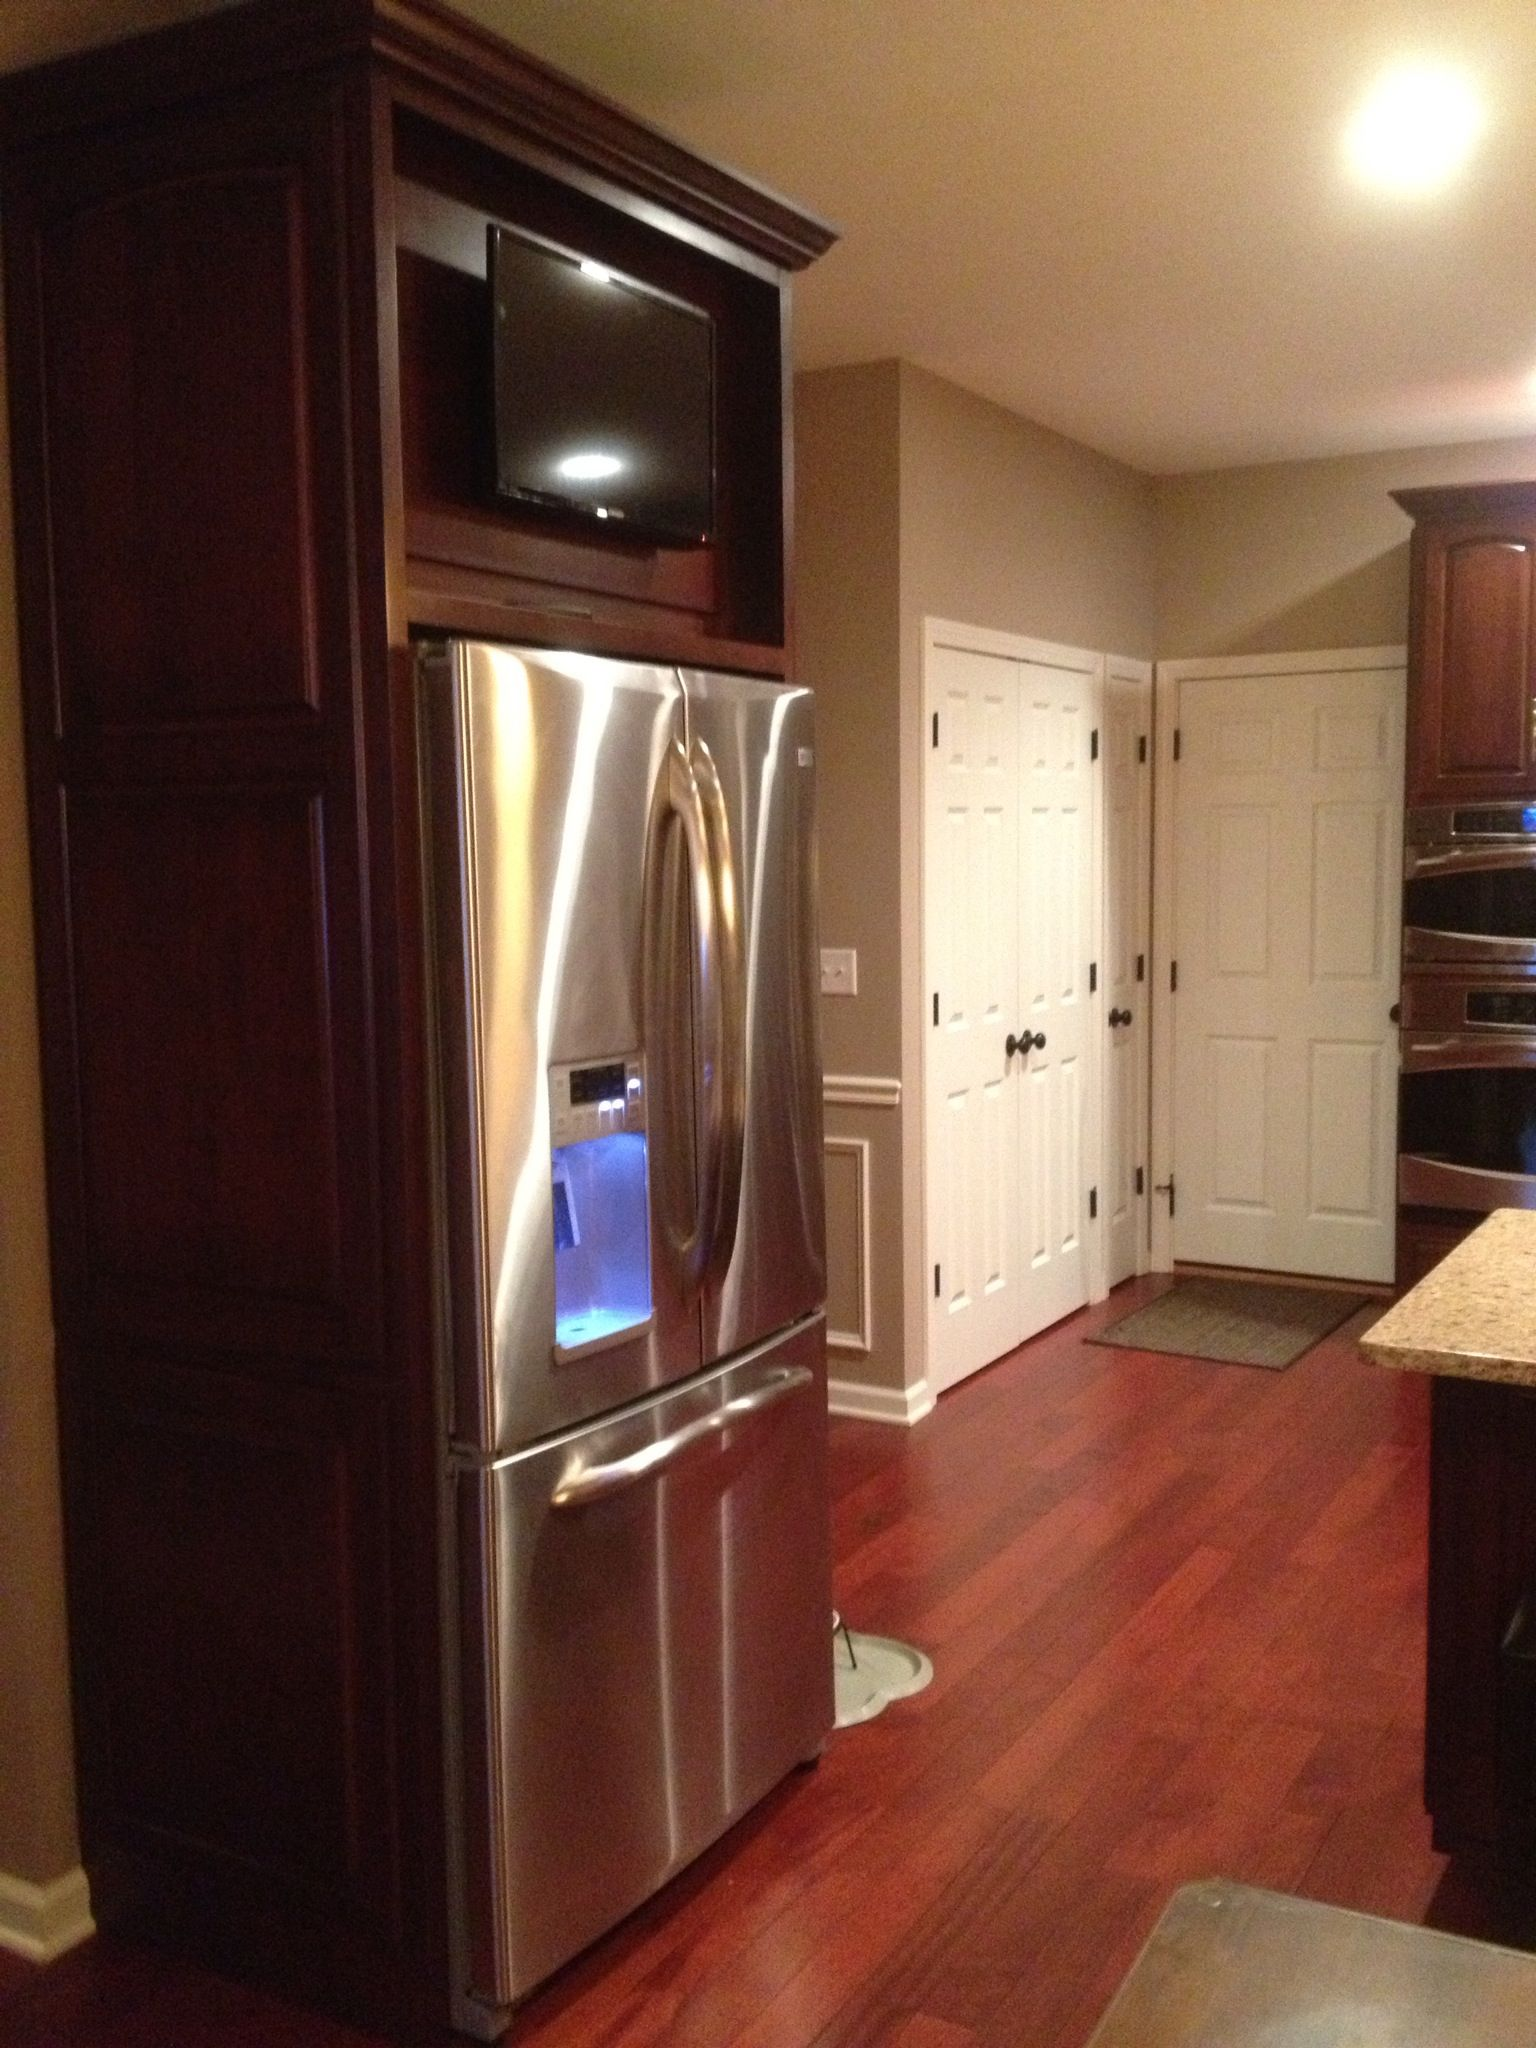 Tv Cabinet Kitchen Tv Mounted Above Refrigerator On A Cabinet Door That Is